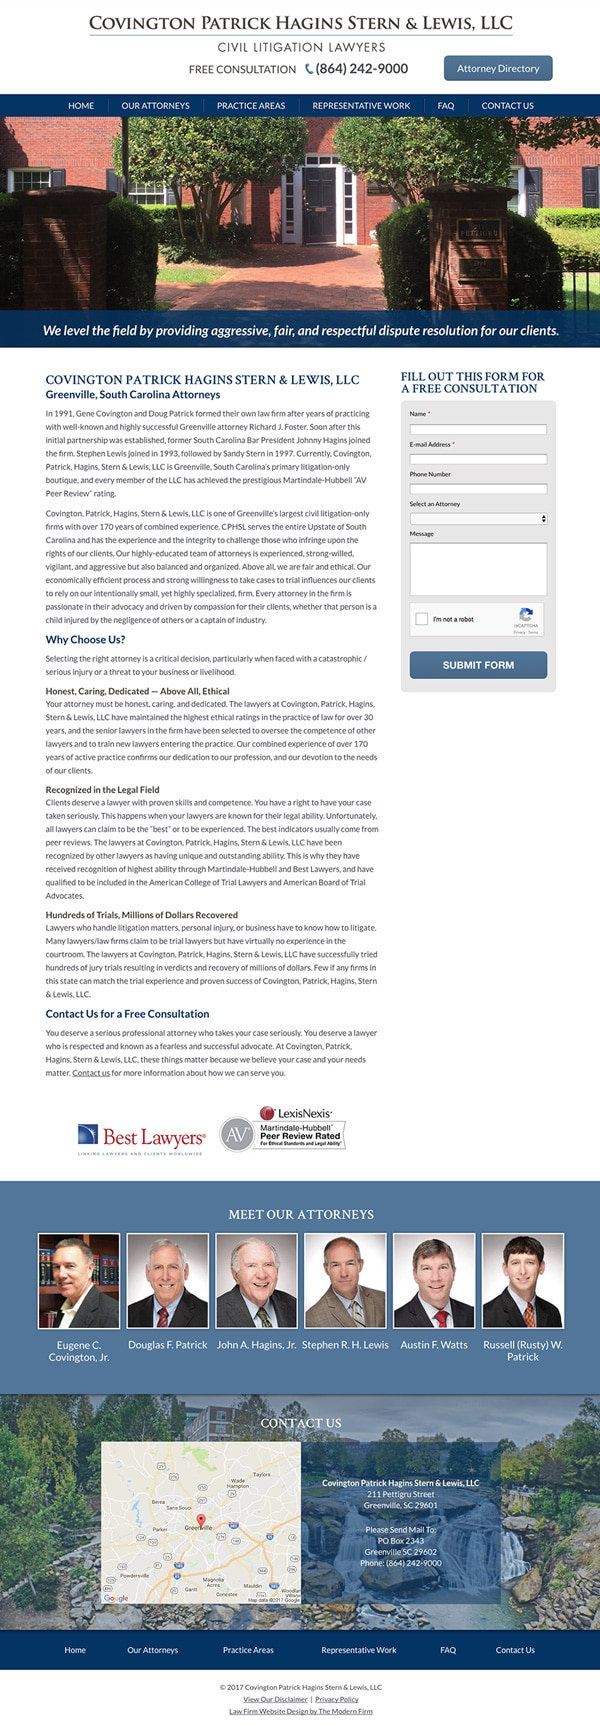 Law Firm Website for Covington Patrick Hagins Stern & Lewis, LLC